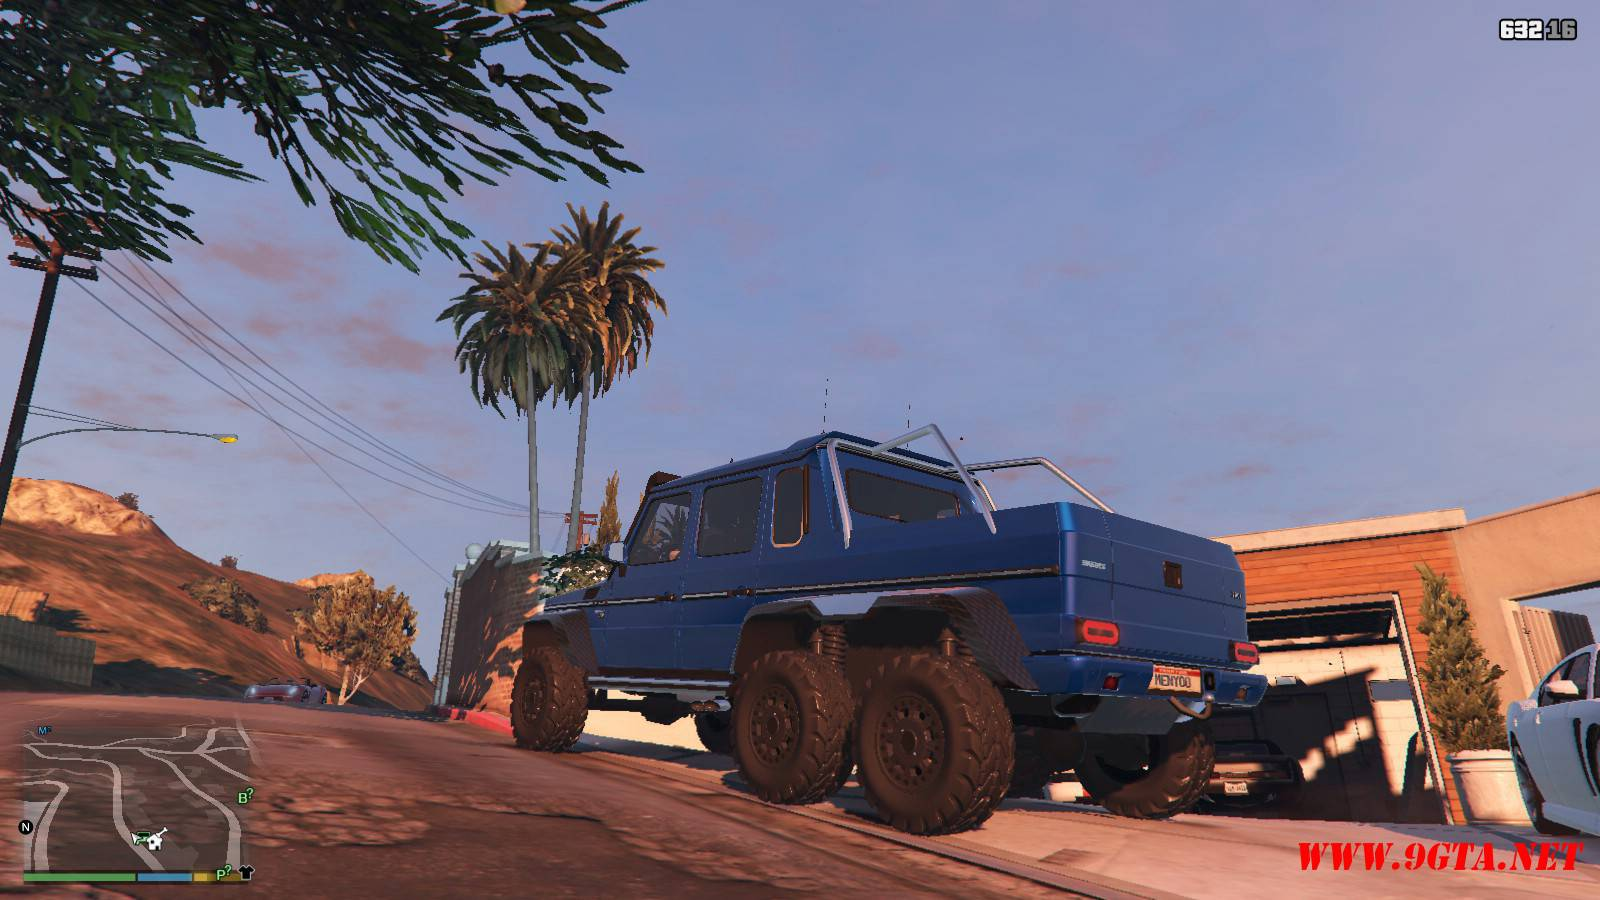 Barbus 700 G63 AMG GTA5 Mods (13)